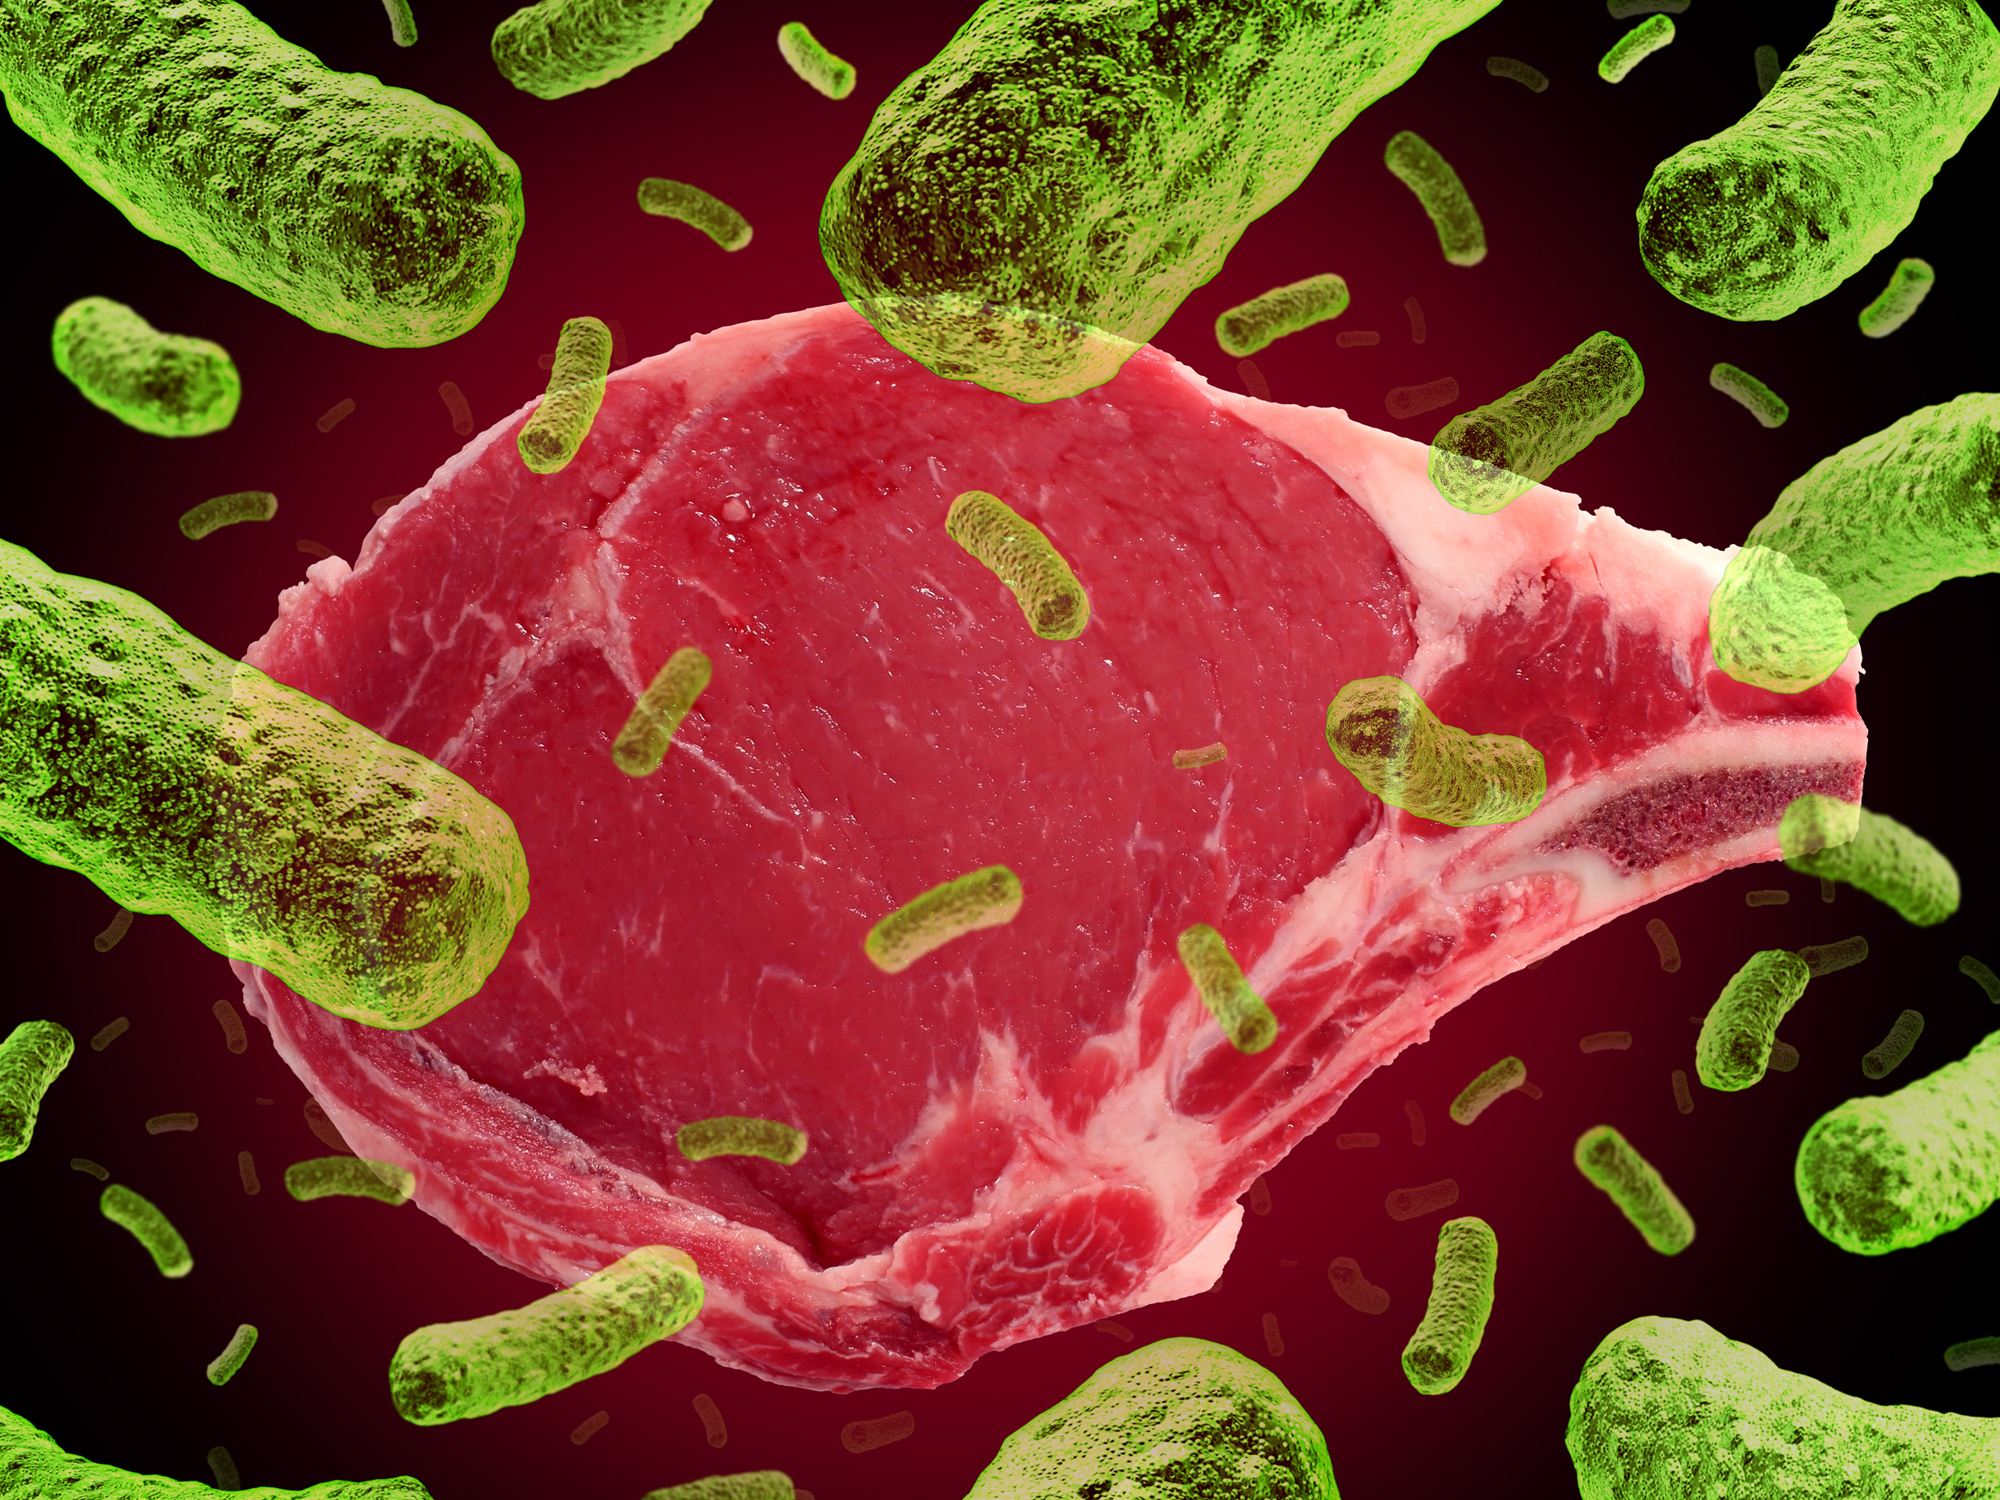 Not for the squeamish: Superbugs found in 80% of supermarket meat